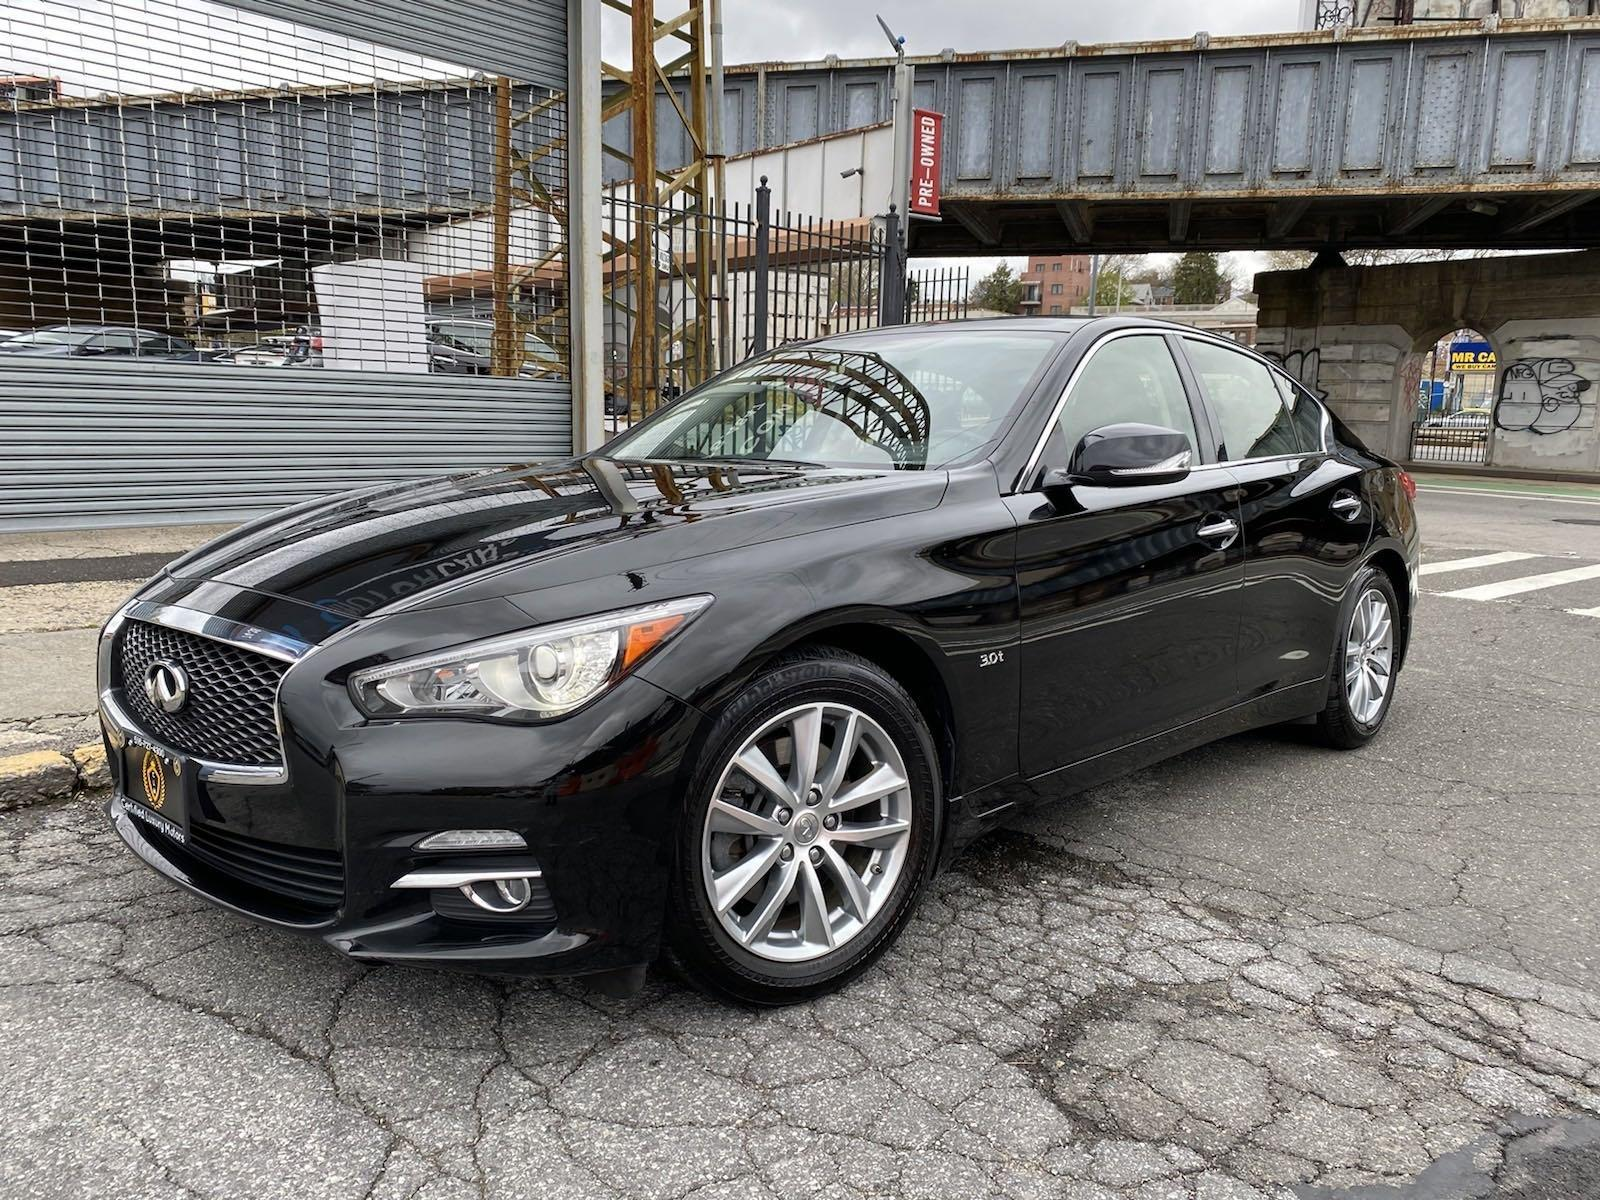 2016 Infiniti Q50 3.0 T Premium >> 2016 INFINITI Q50 3.0t Premium Stock # C0715-Q for sale ...